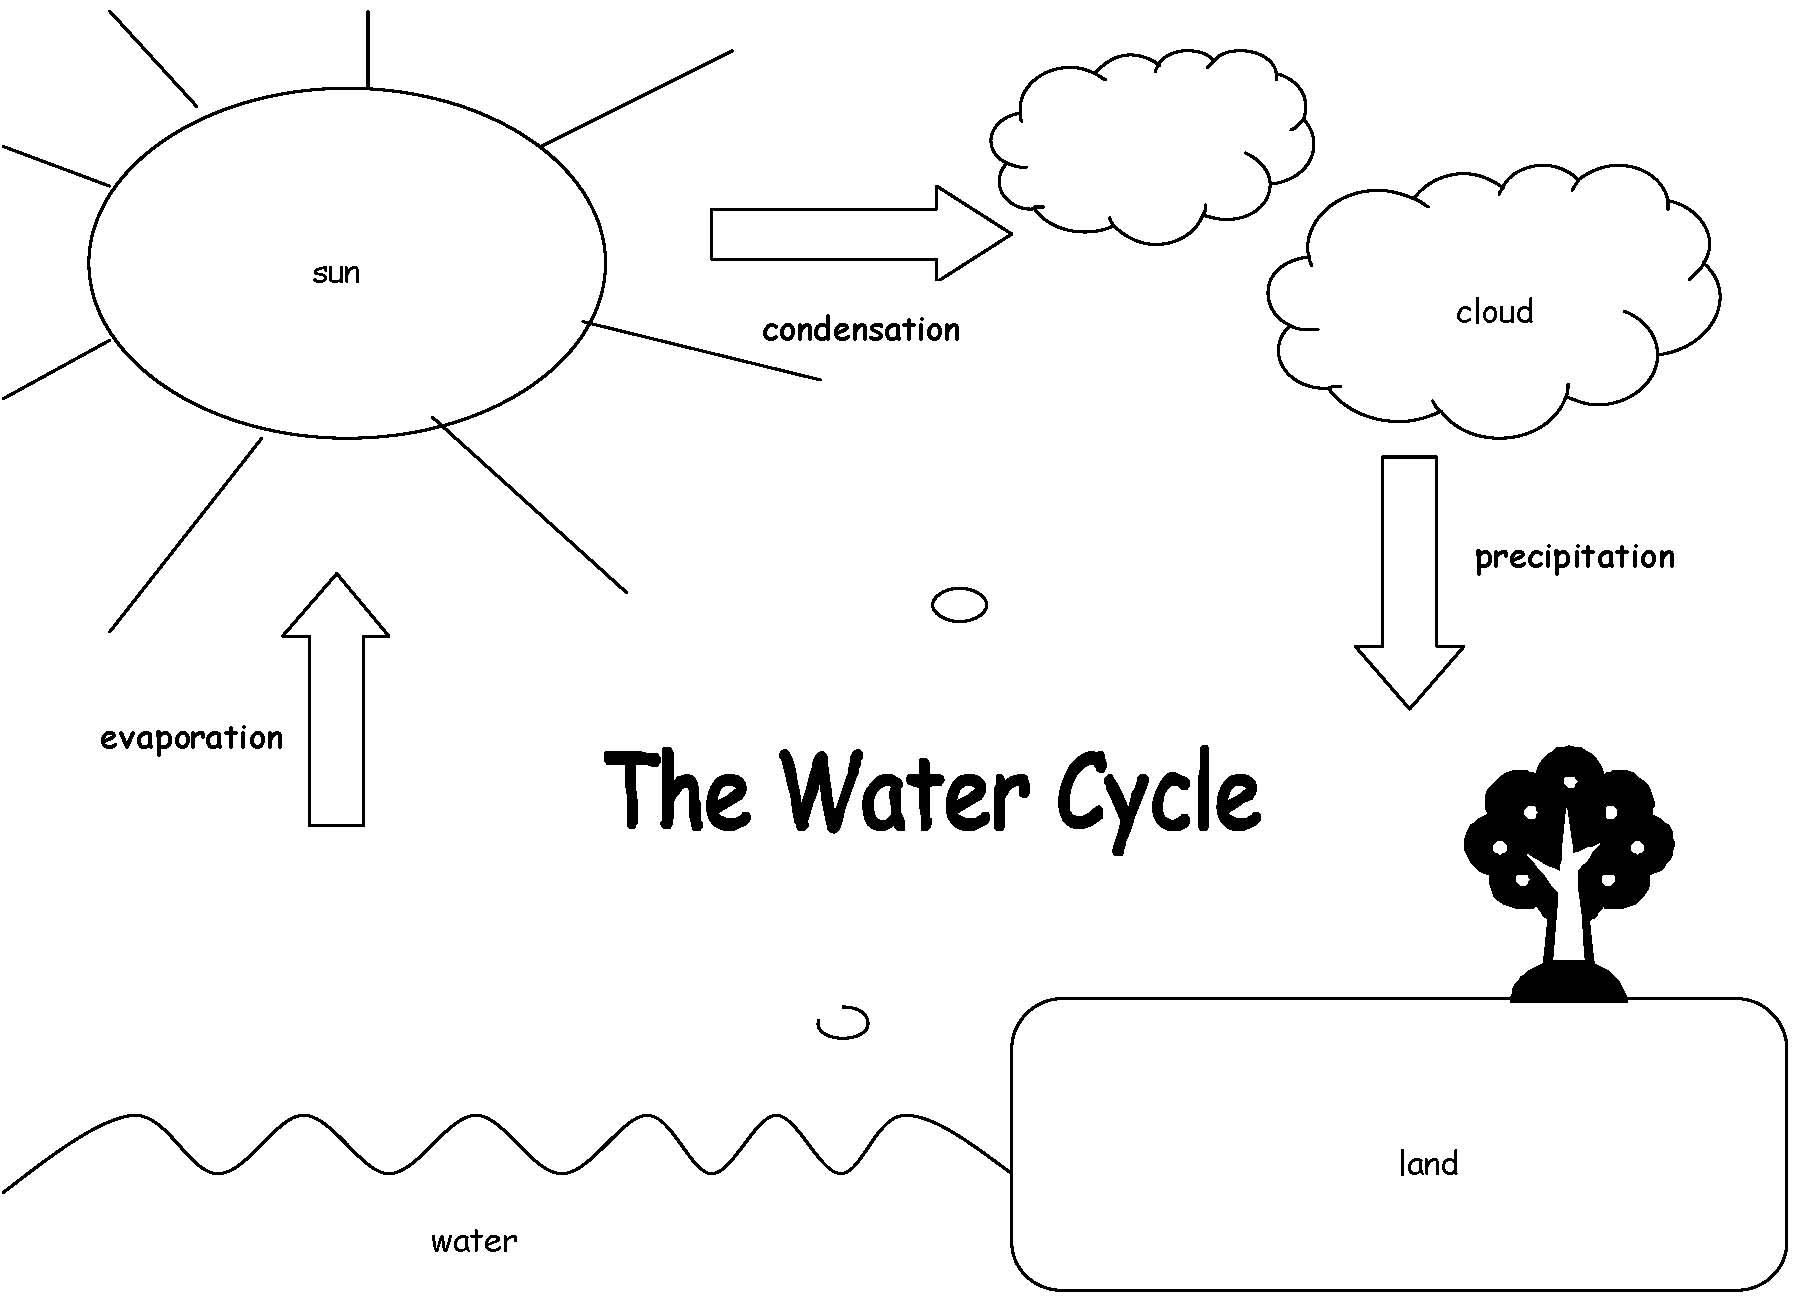 Sketch Diagram Of Water Cycle